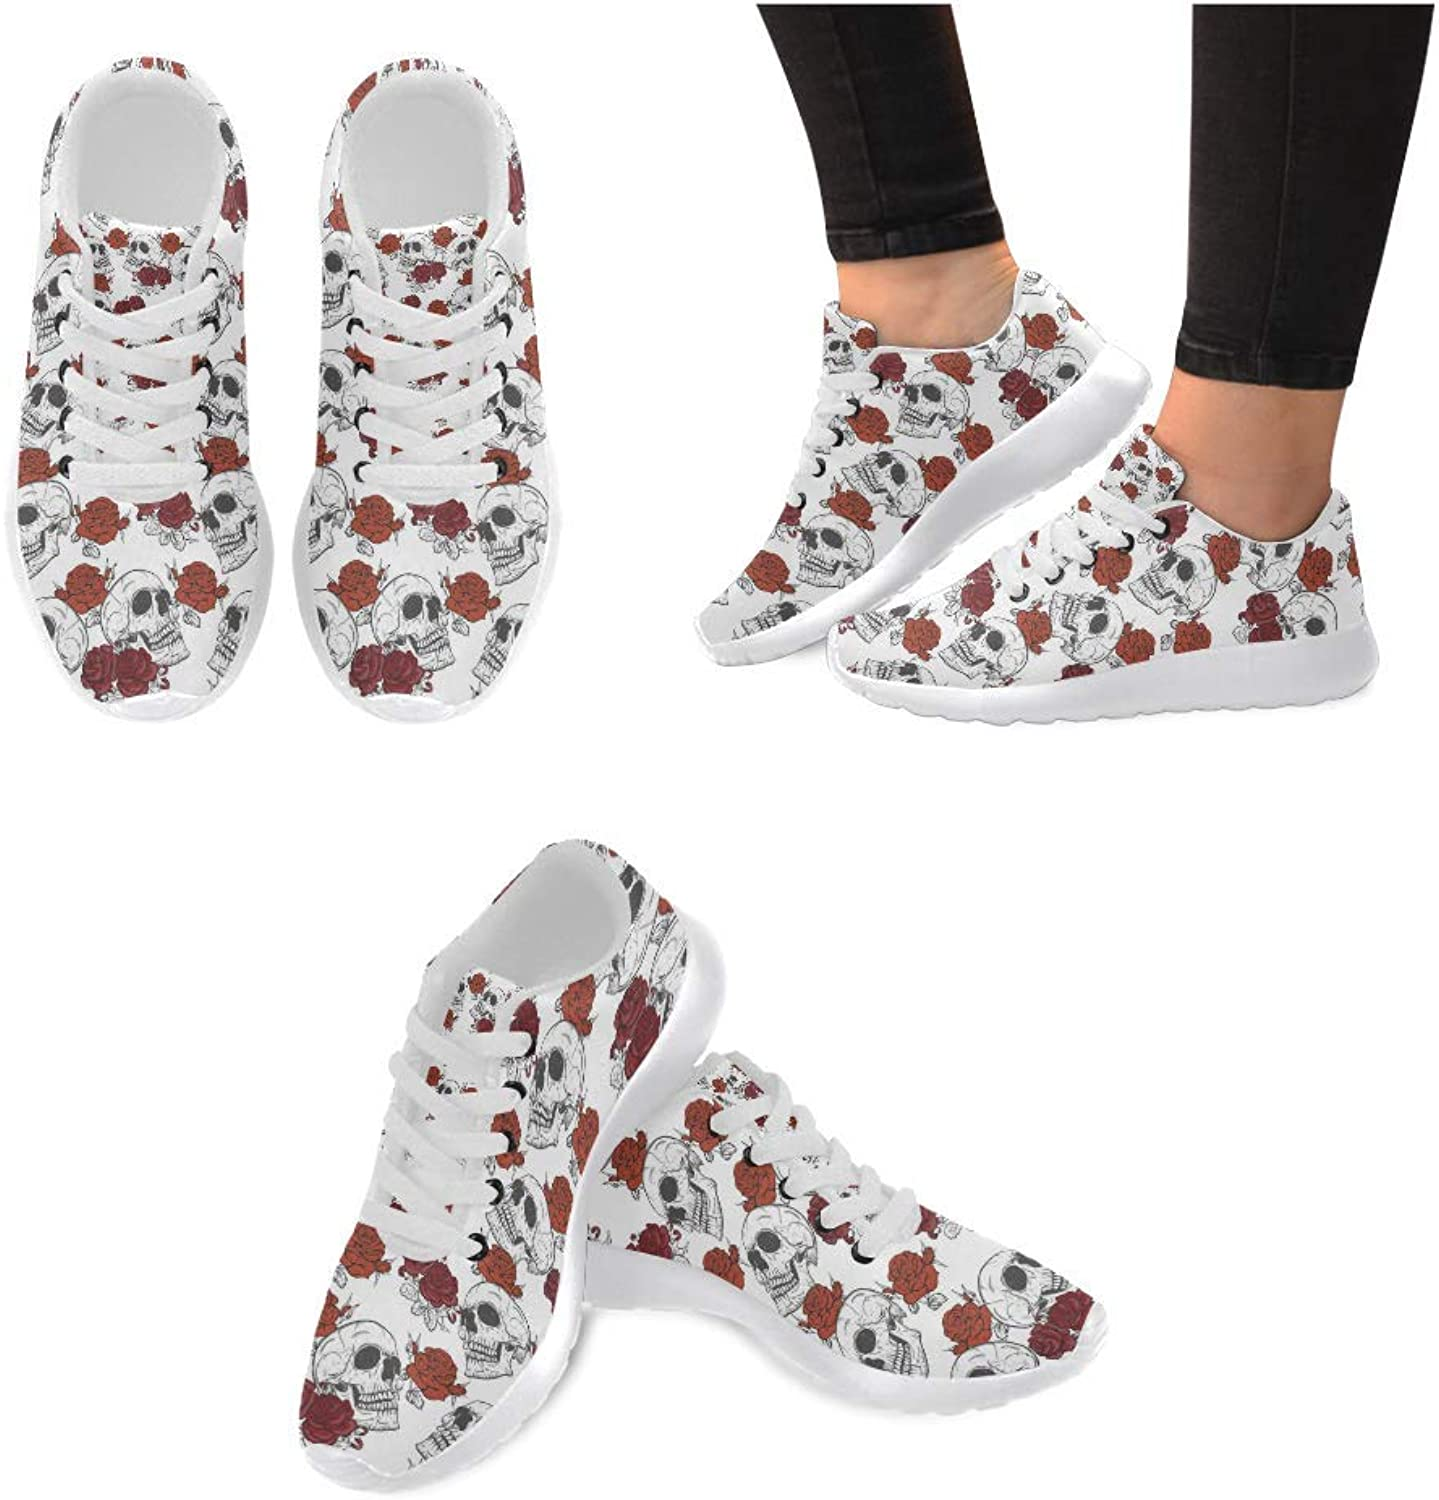 Women Lightweight Casual Sneaker Running shoes pinks and Skull Prints